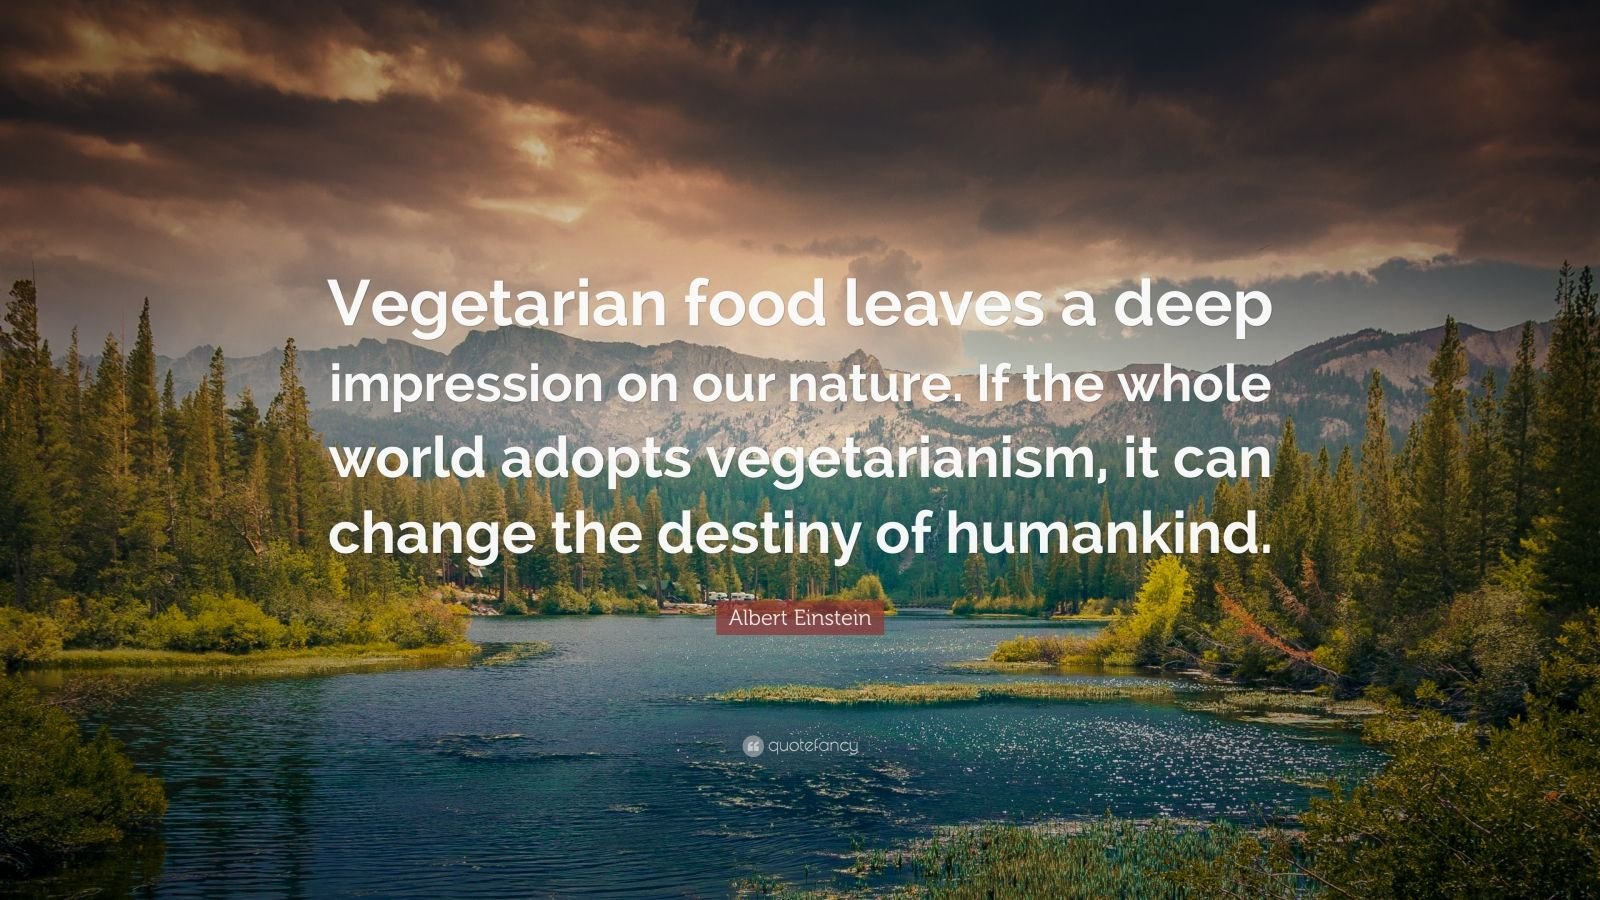 """Albert Einstein Quote: """"Vegetarian food leaves a deep impression on our nature. If the whole world adopts vegetarianism, it can change the destiny of humankind."""""""